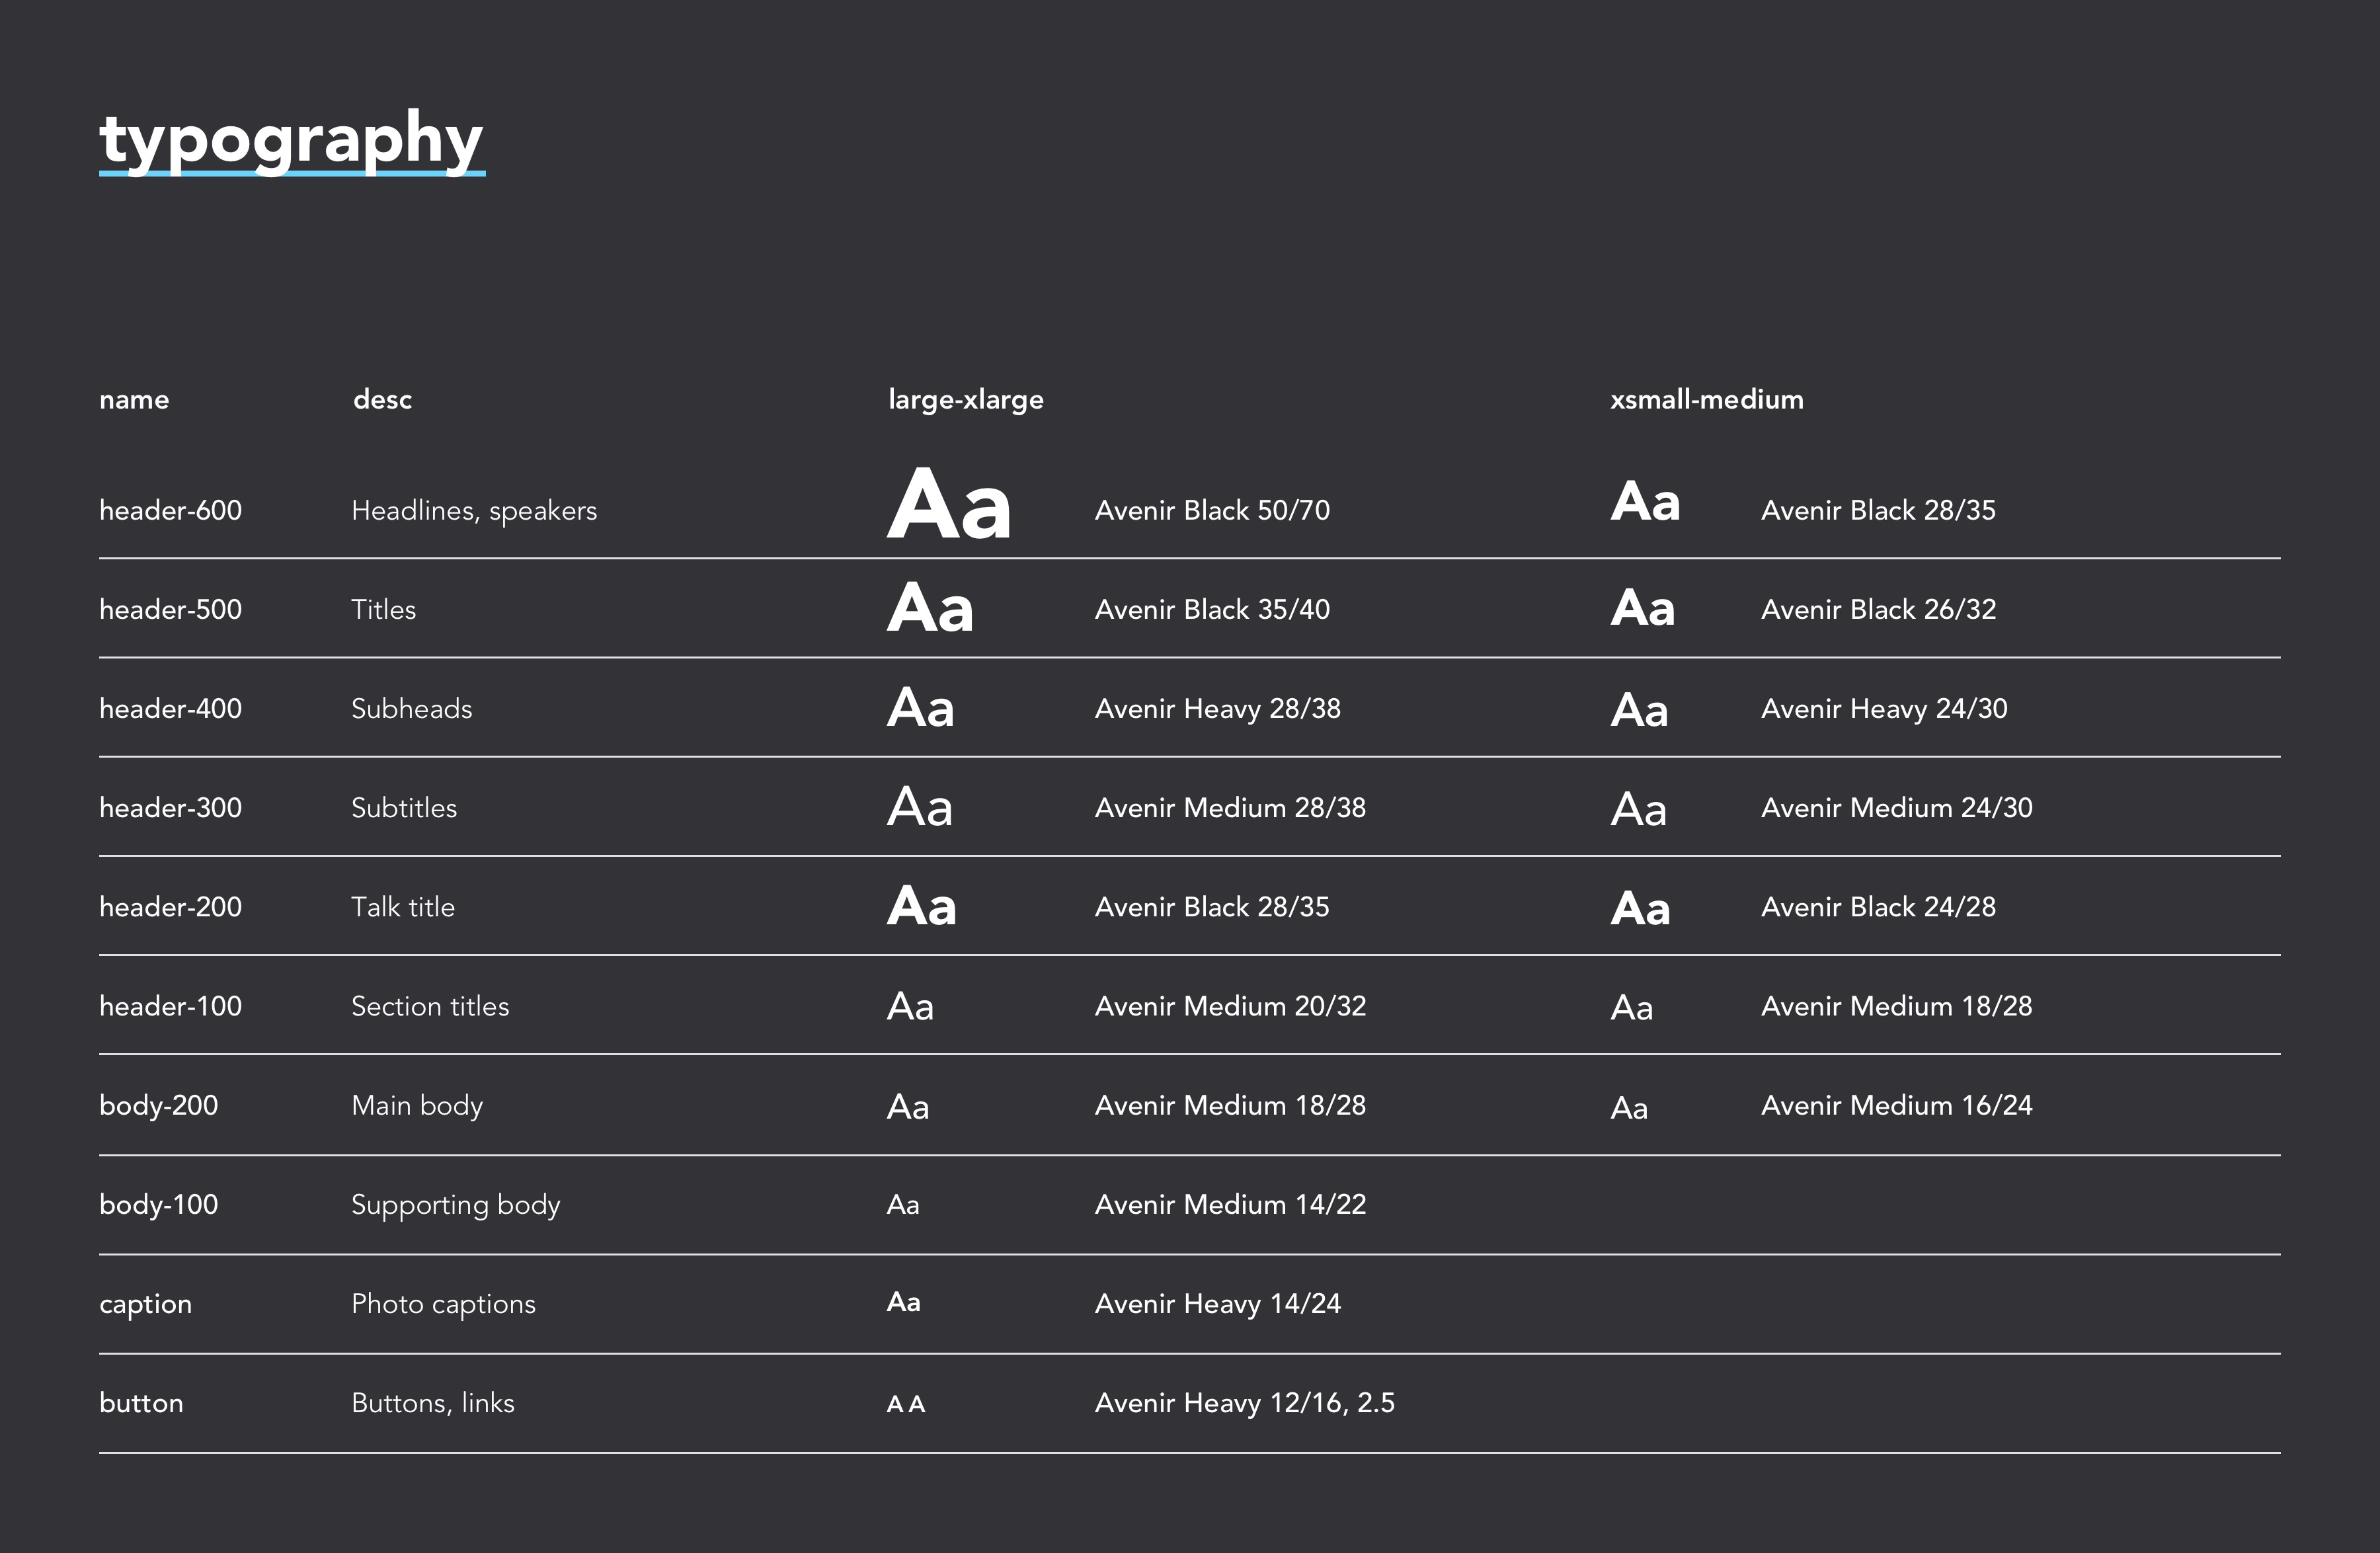 Our updated Ethos type palette with header, body, and caption categories across XS-XL screens.